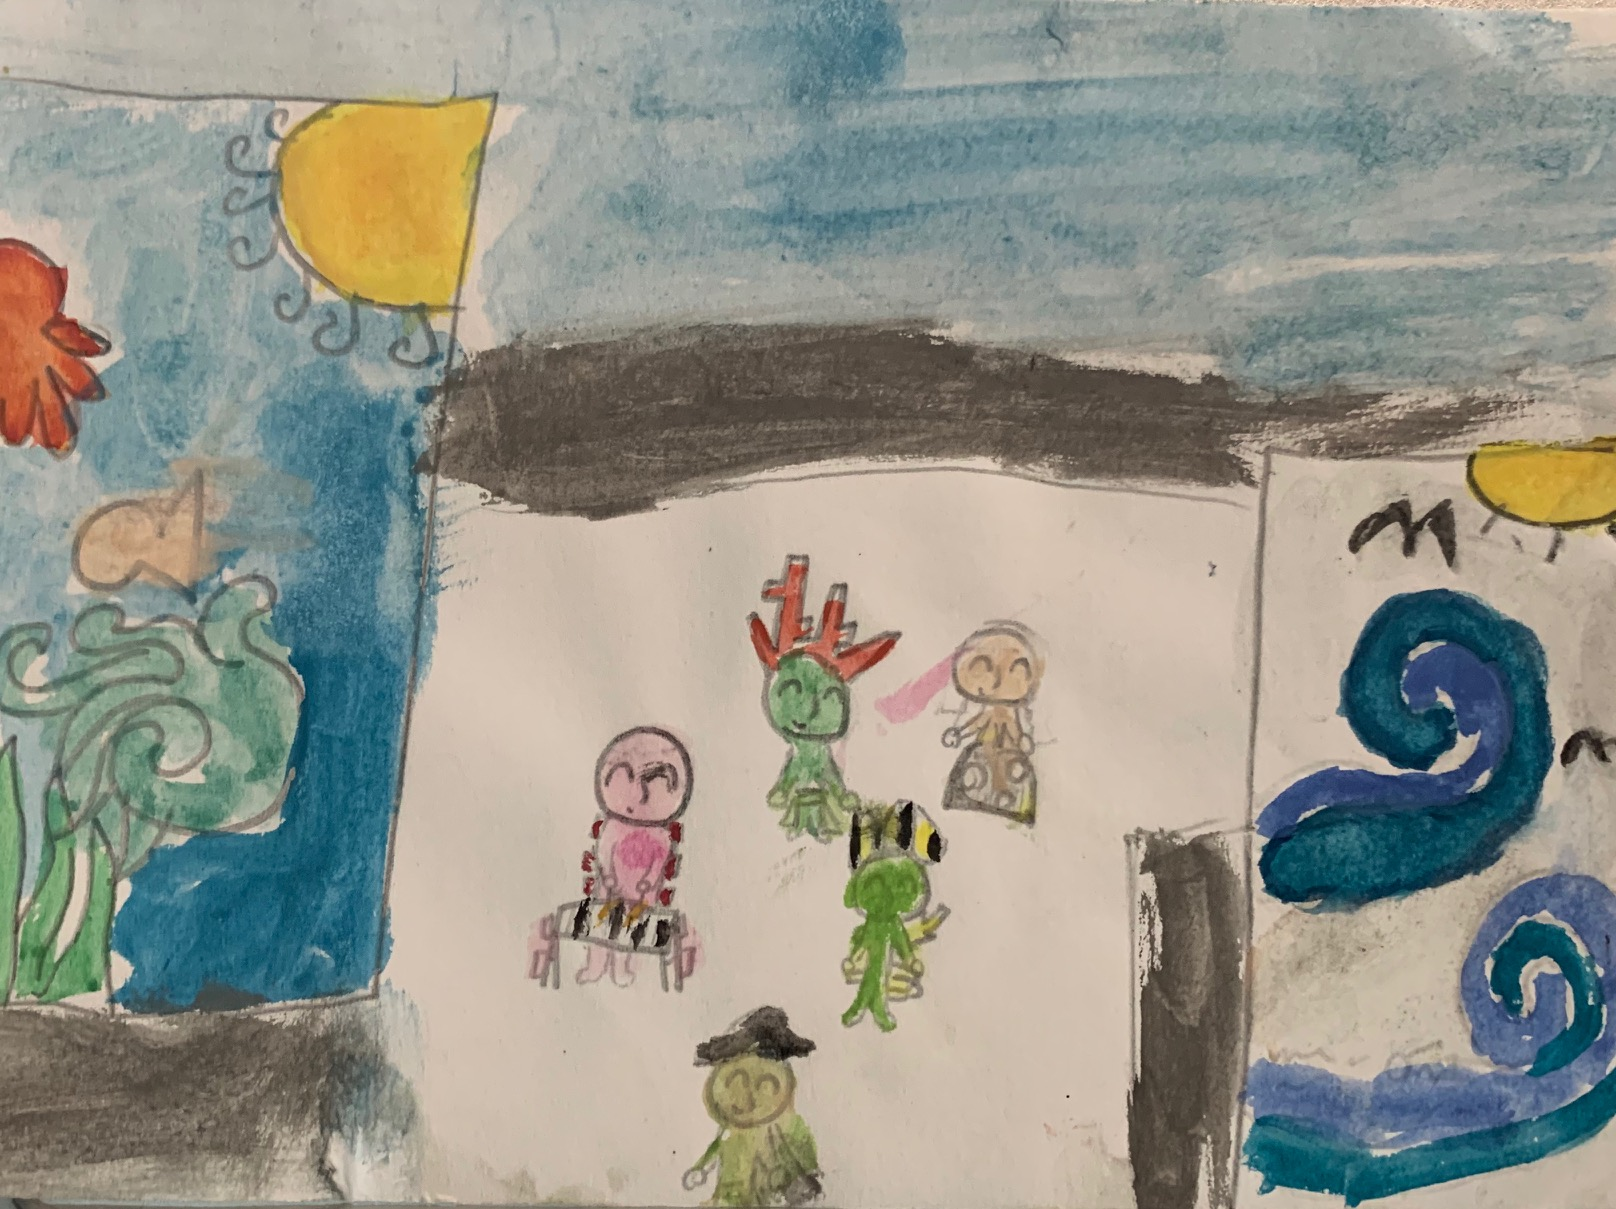 A child's drawing featuring people and ocean elements.